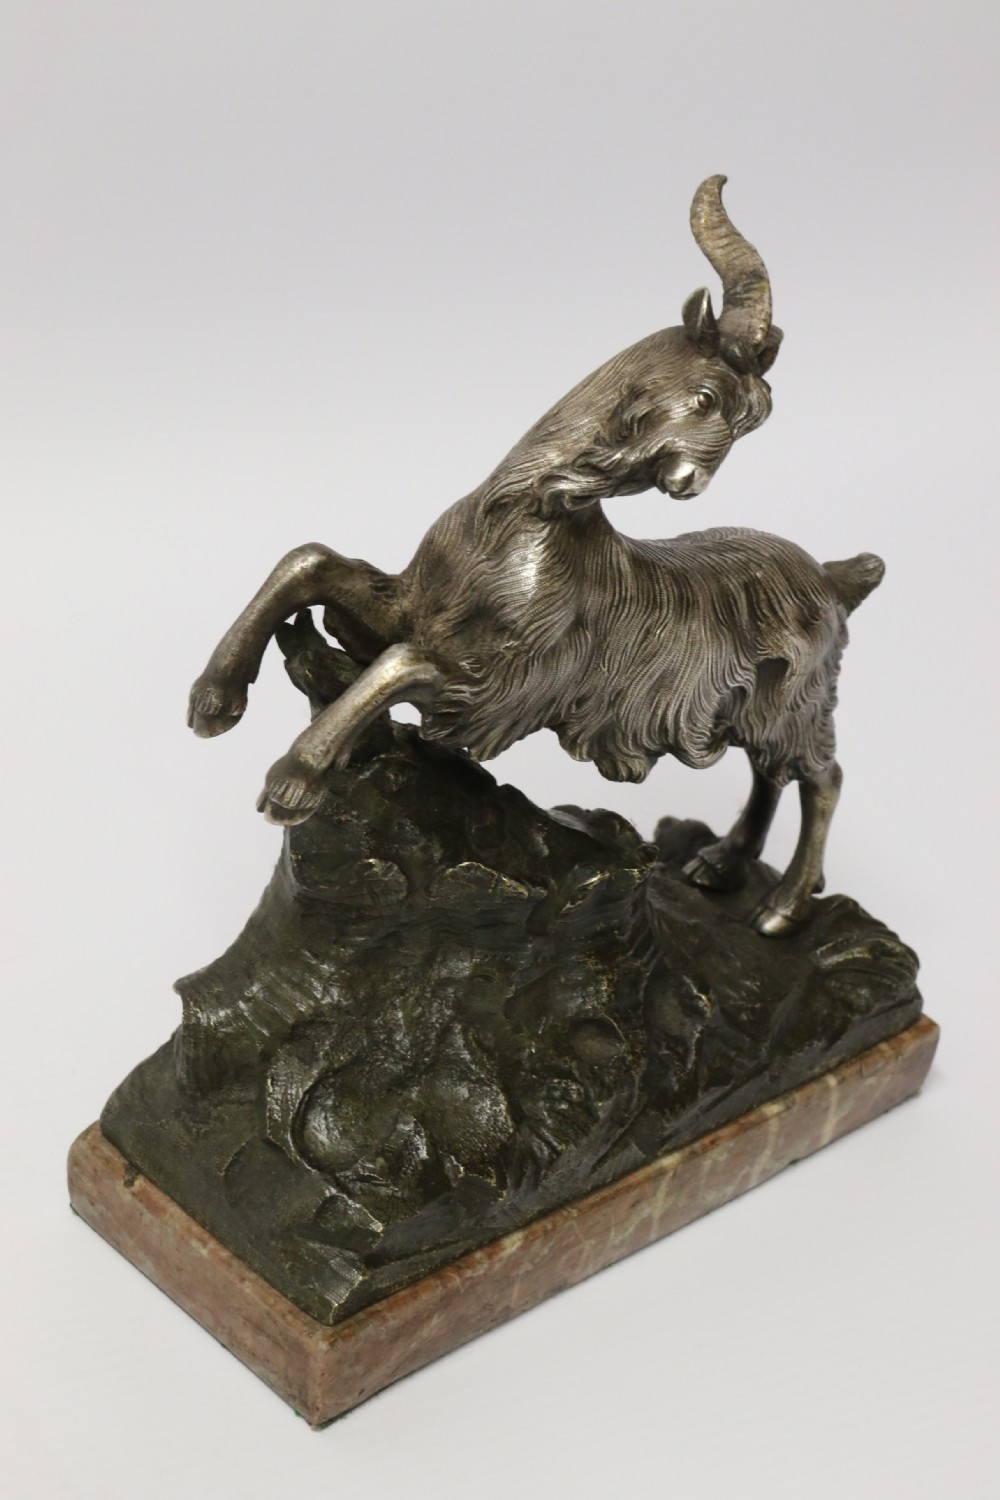 a mid 19th century silvered bronze study of a goat